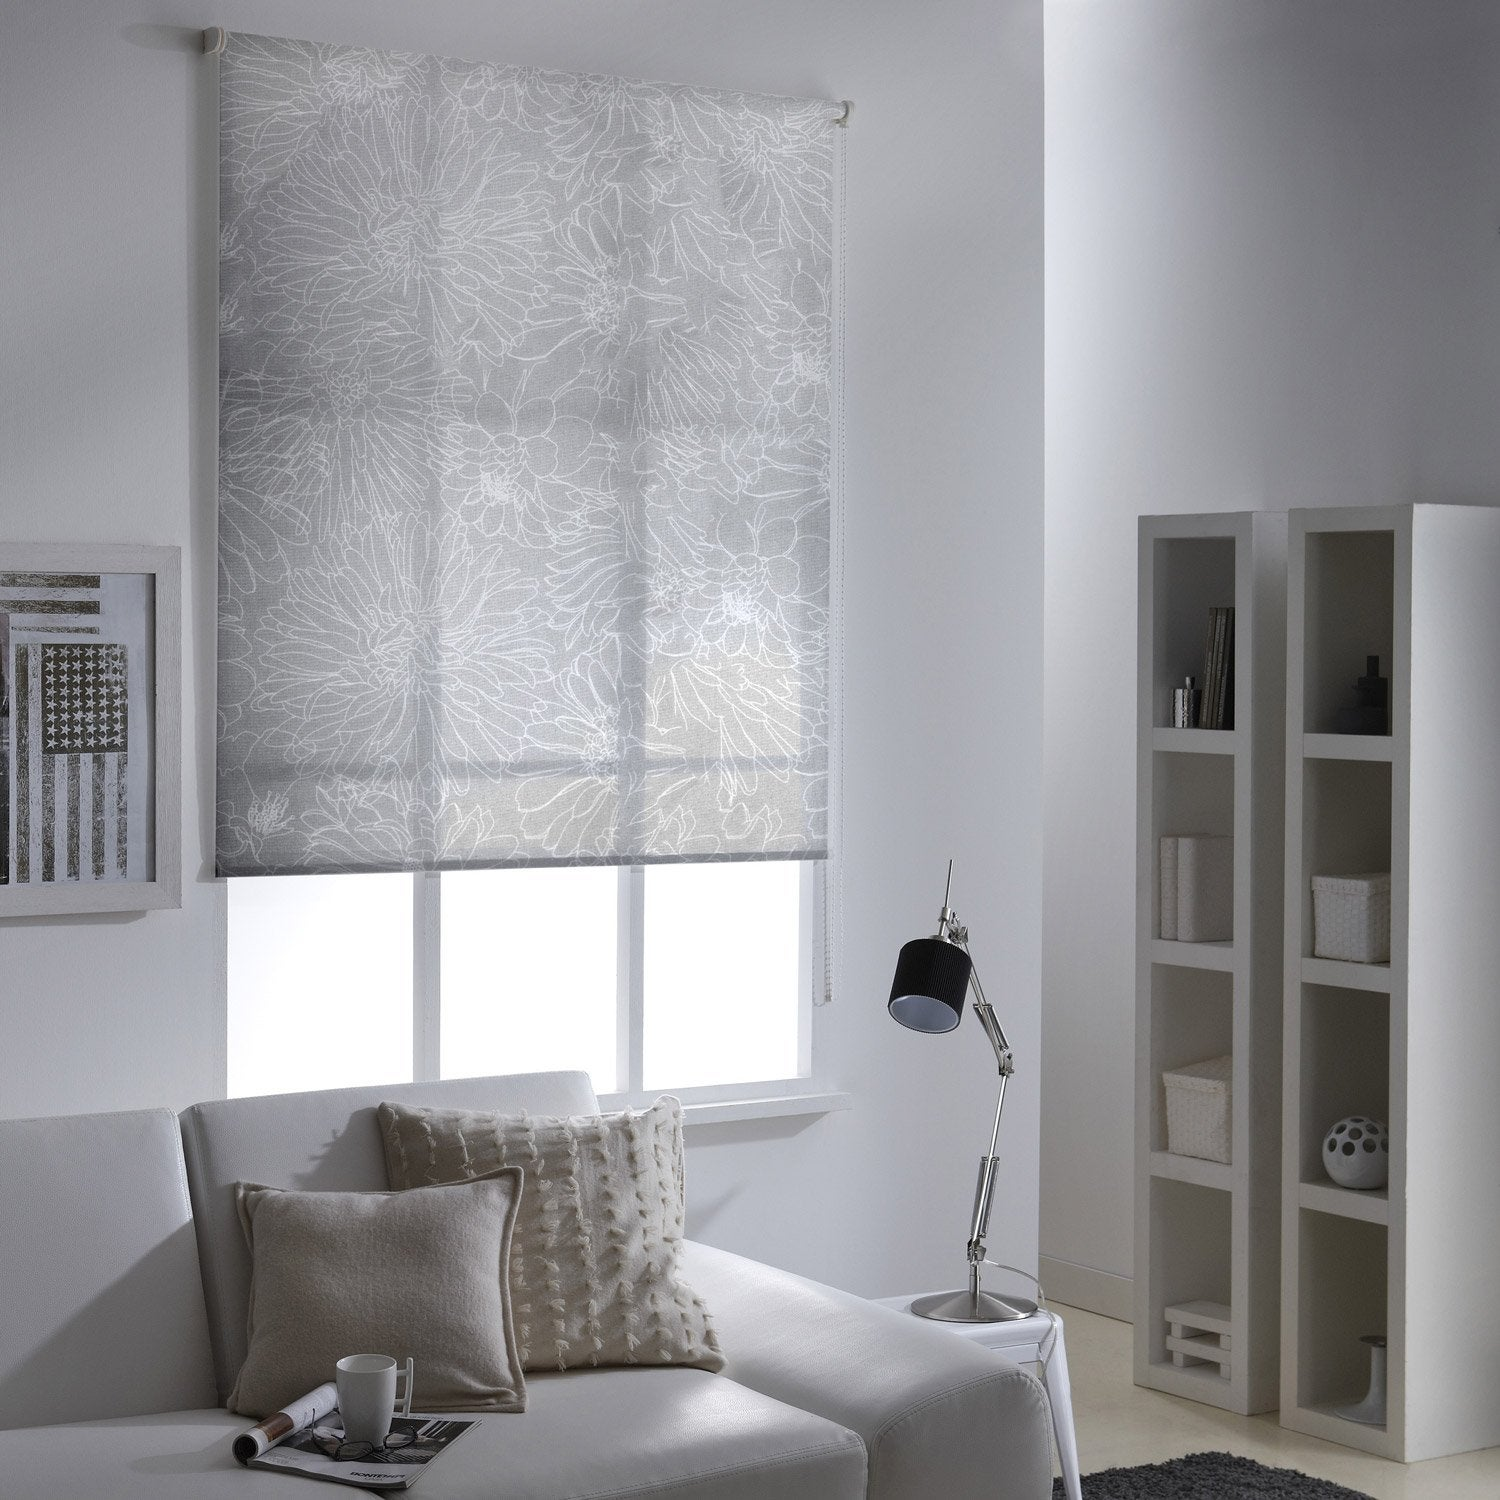 store enrouleur tamisant fleurs crayonn es blanc 95x190 cm leroy merlin. Black Bedroom Furniture Sets. Home Design Ideas